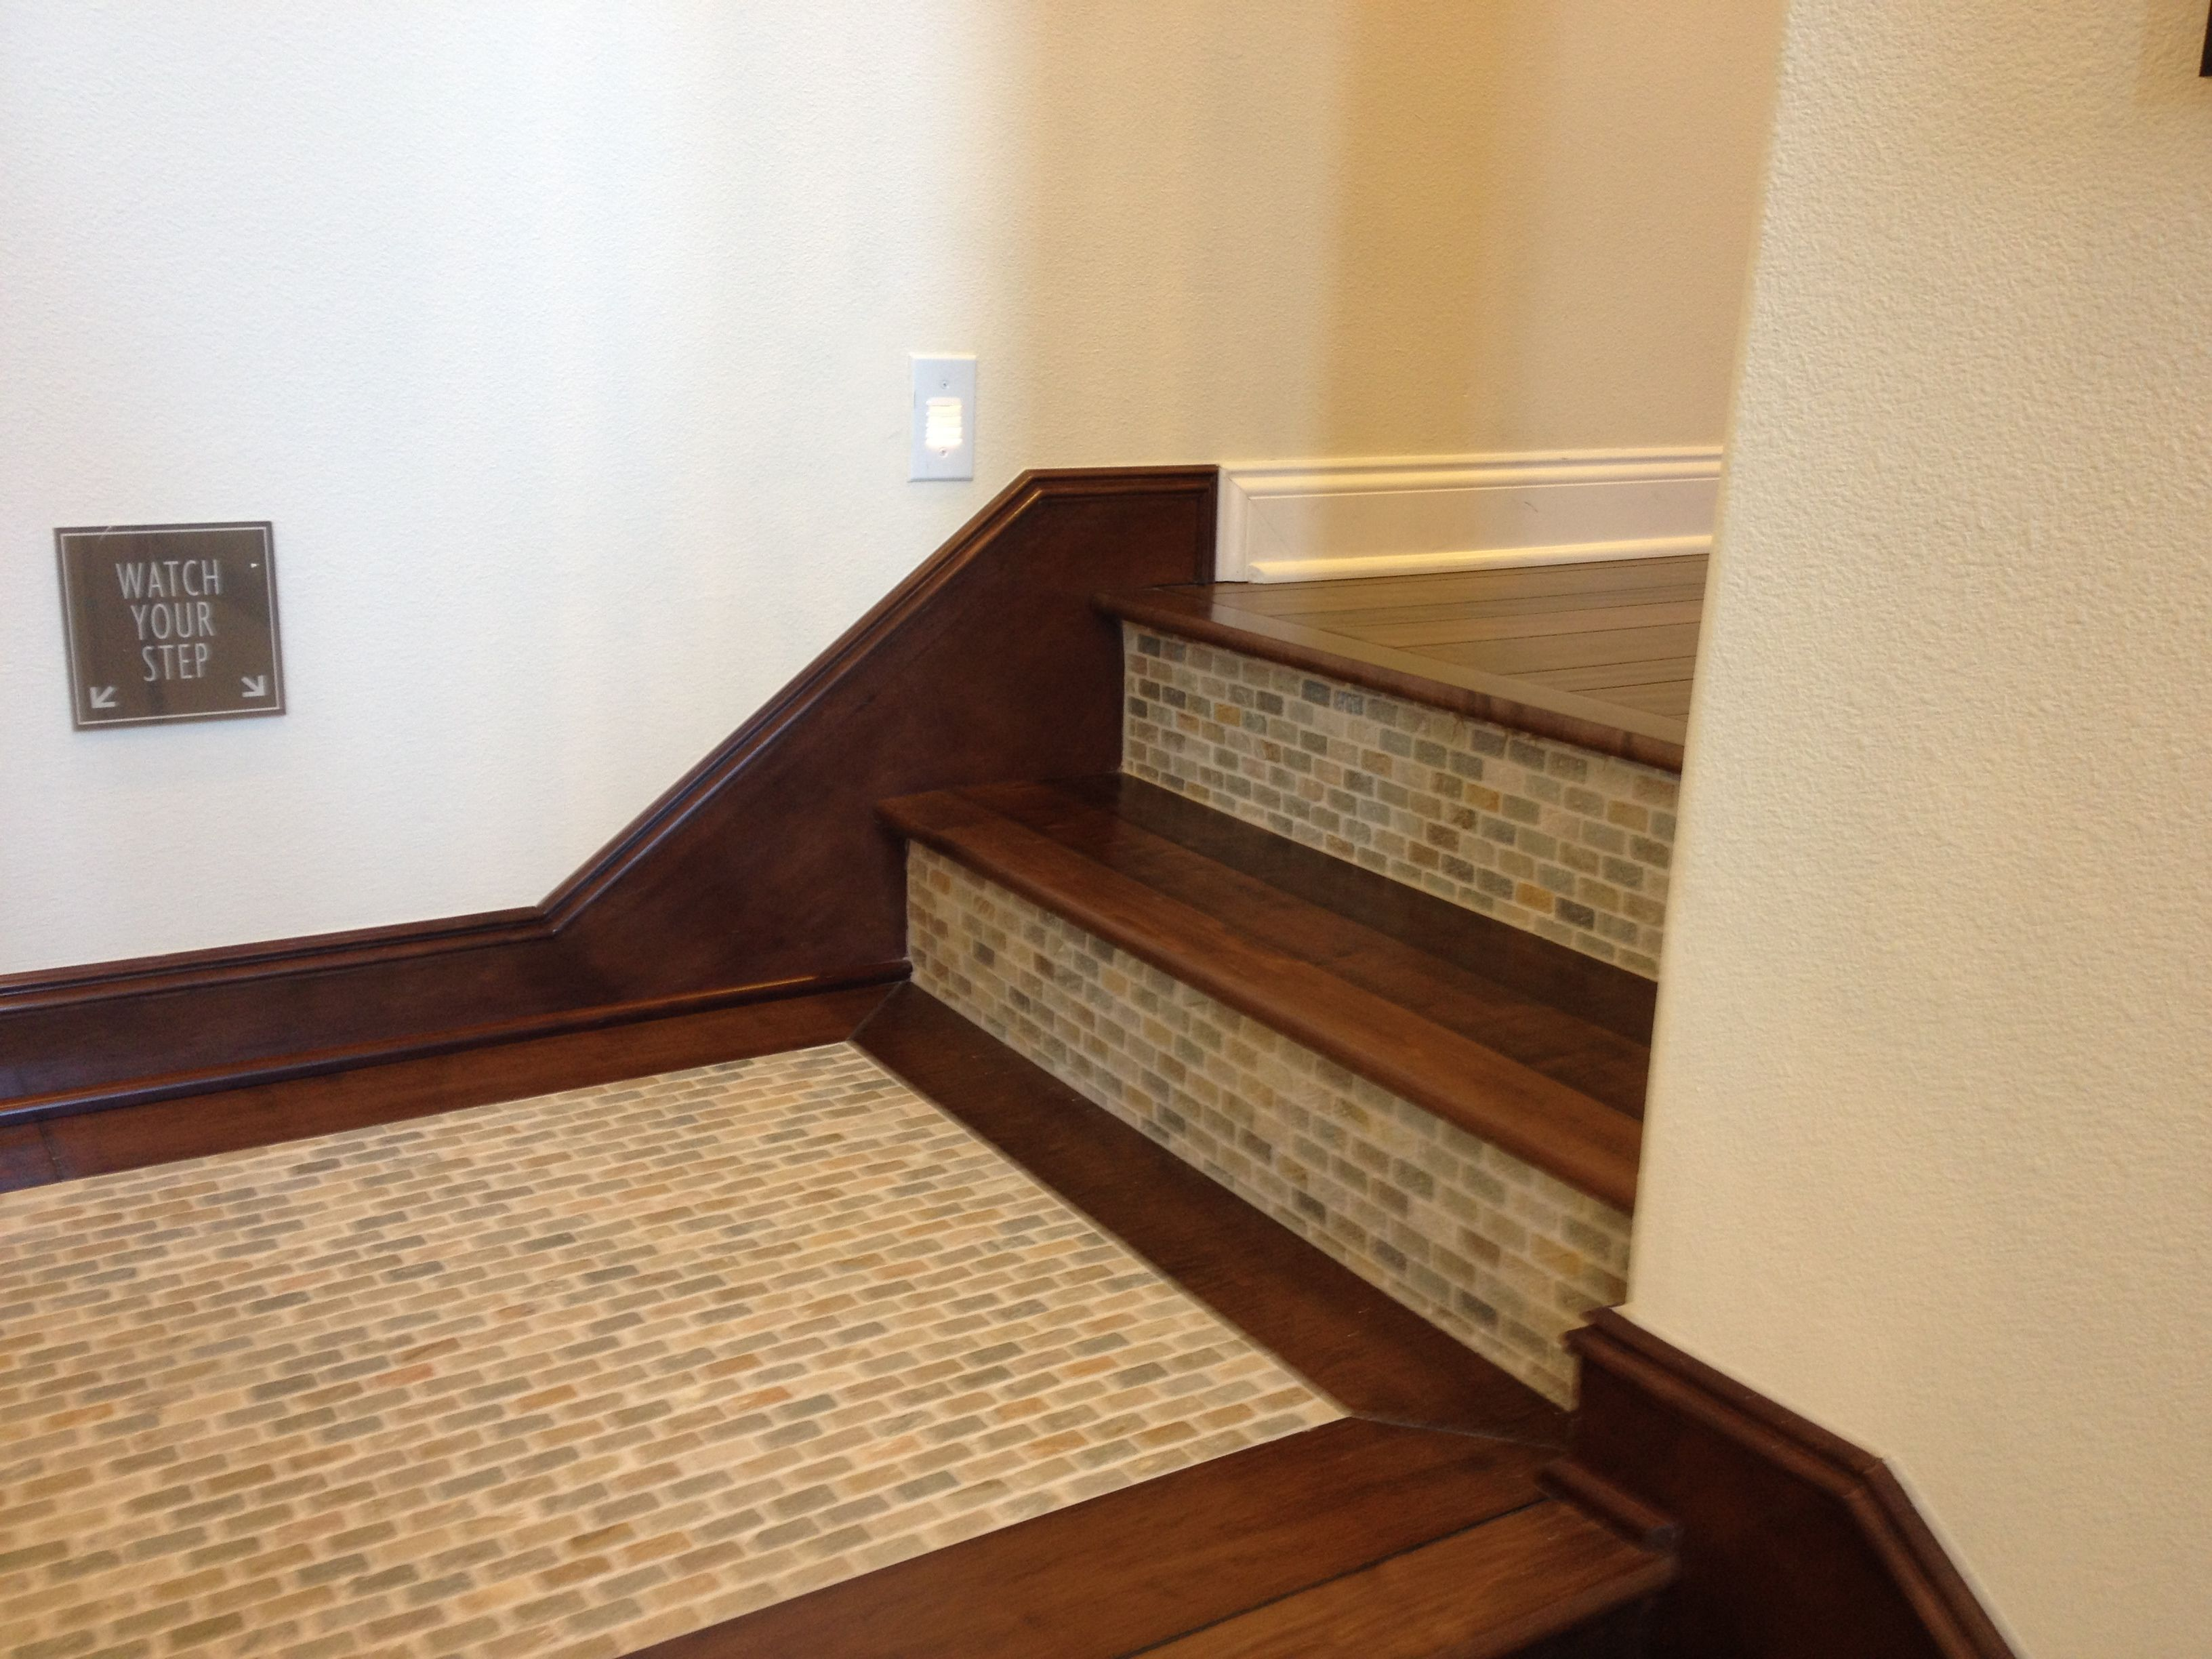 Wondrous Stair Tile Ideas With Tile On Stairs Landing Home Ideas Largest Home Design Picture Inspirations Pitcheantrous